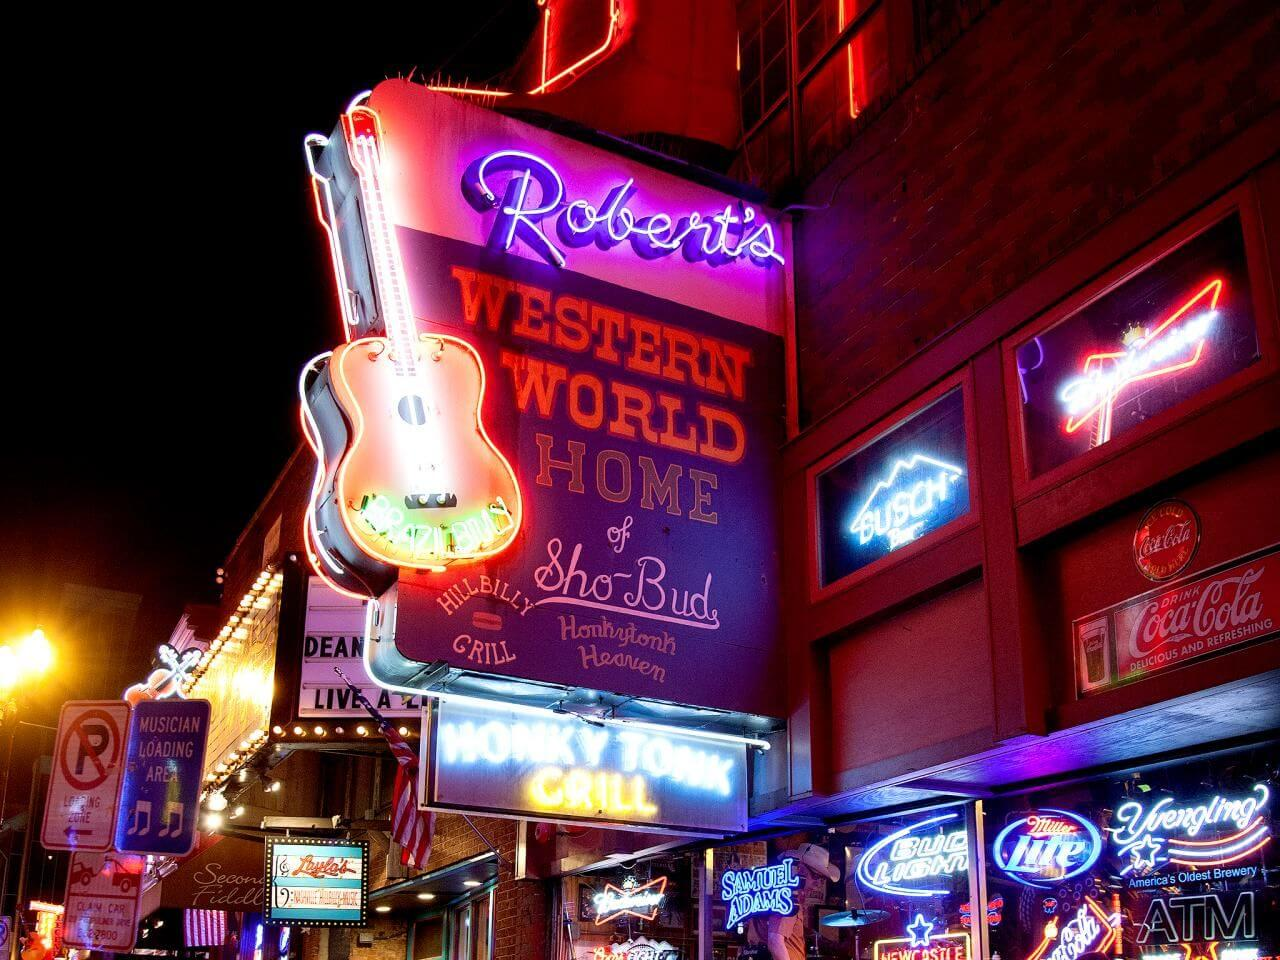 Robert's Western World Things to do in Nashville